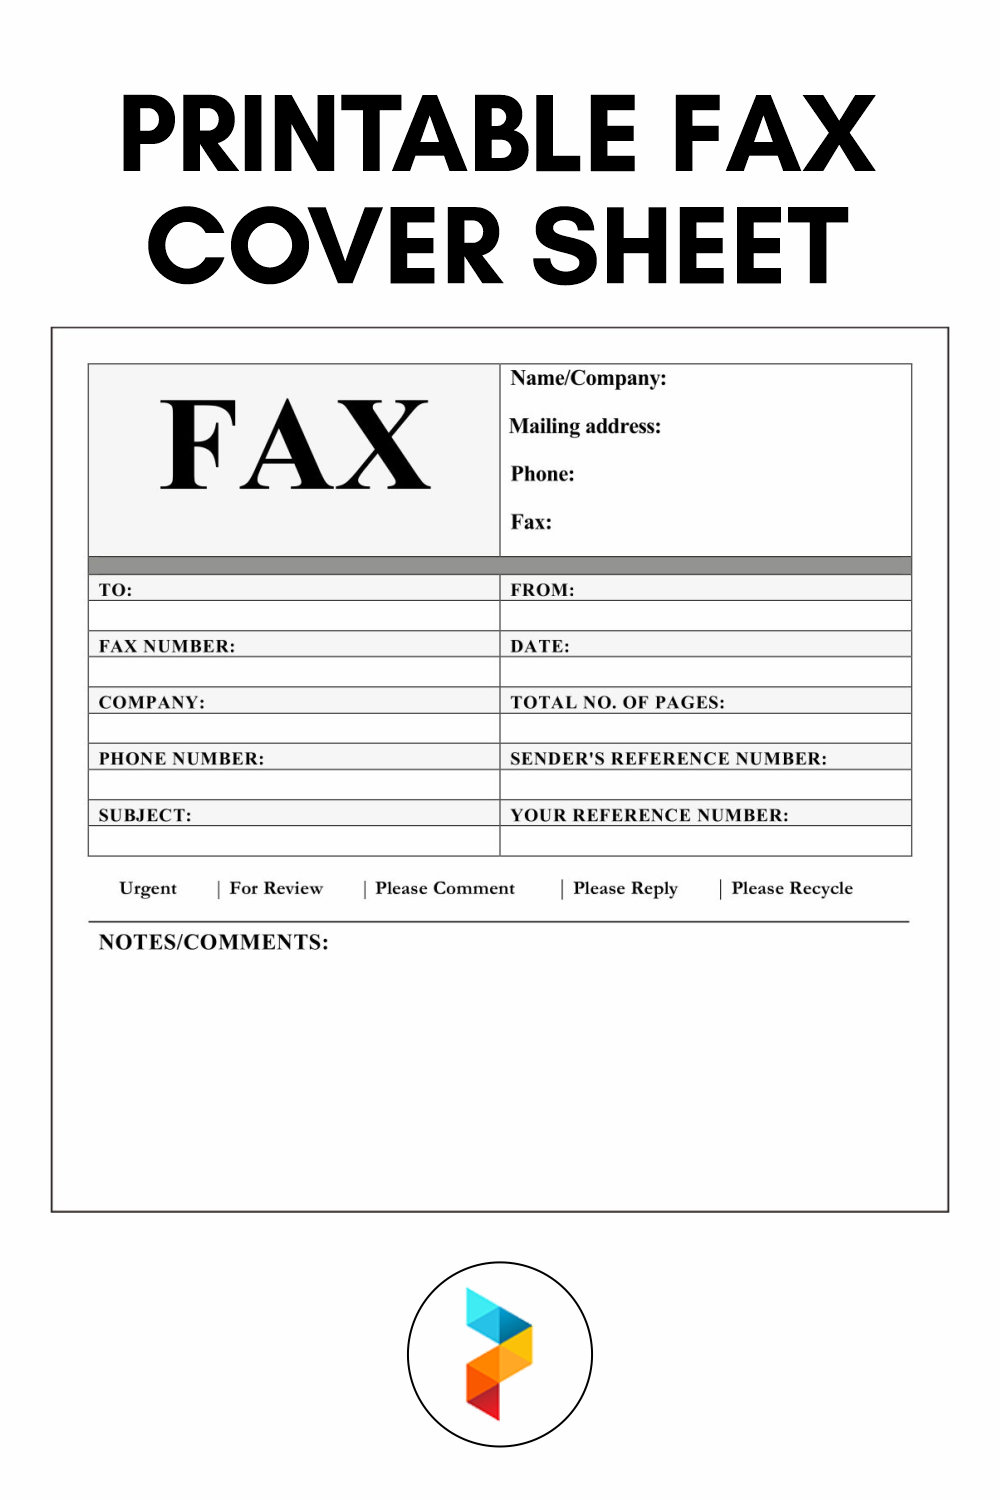 21 Best Printable Fax Cover Sheet - printablee.com With Regard To Fax Cover Sheet Template Word 2010